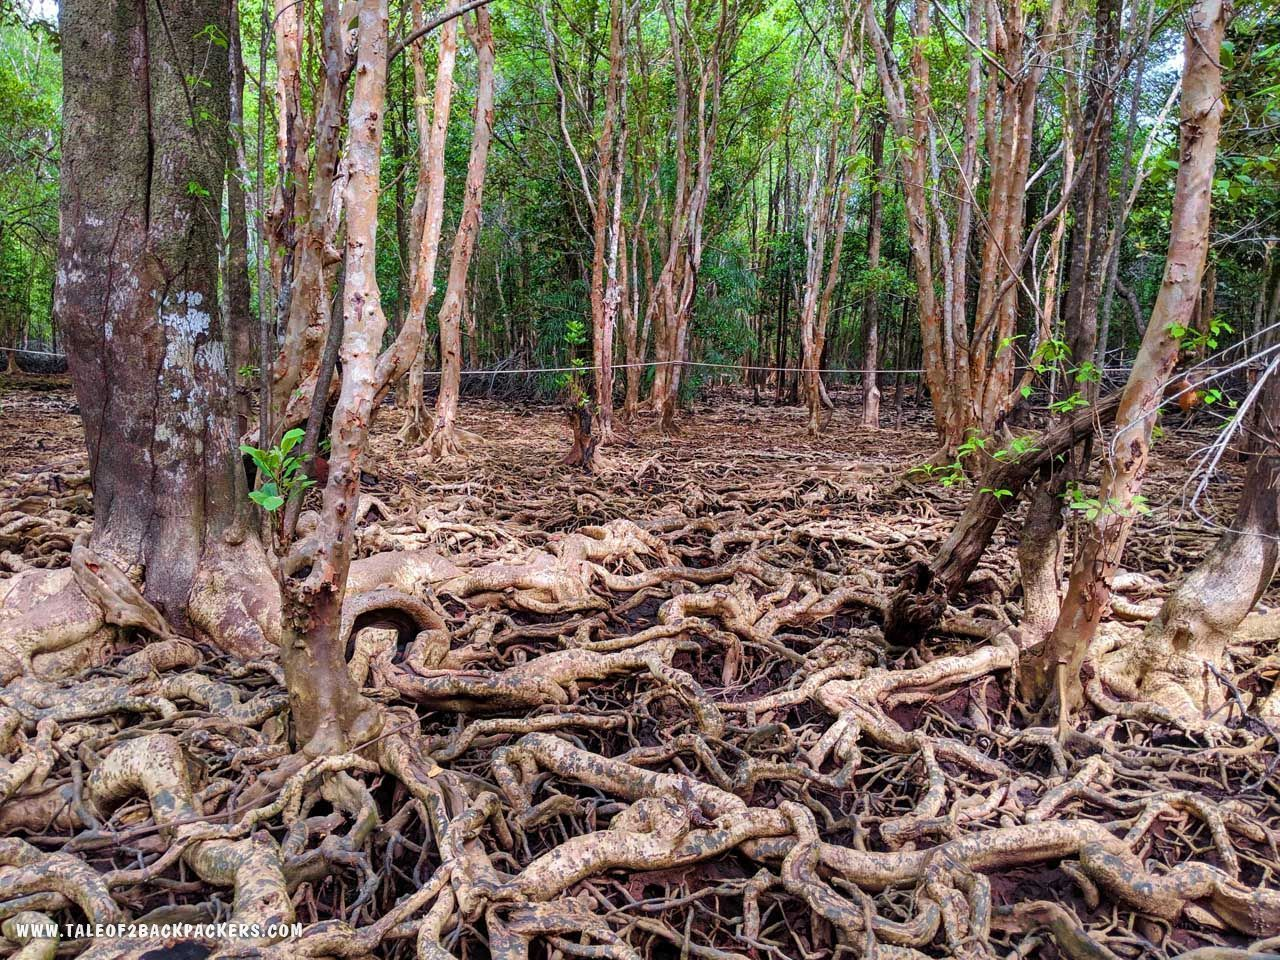 Mangrove forests at Trat